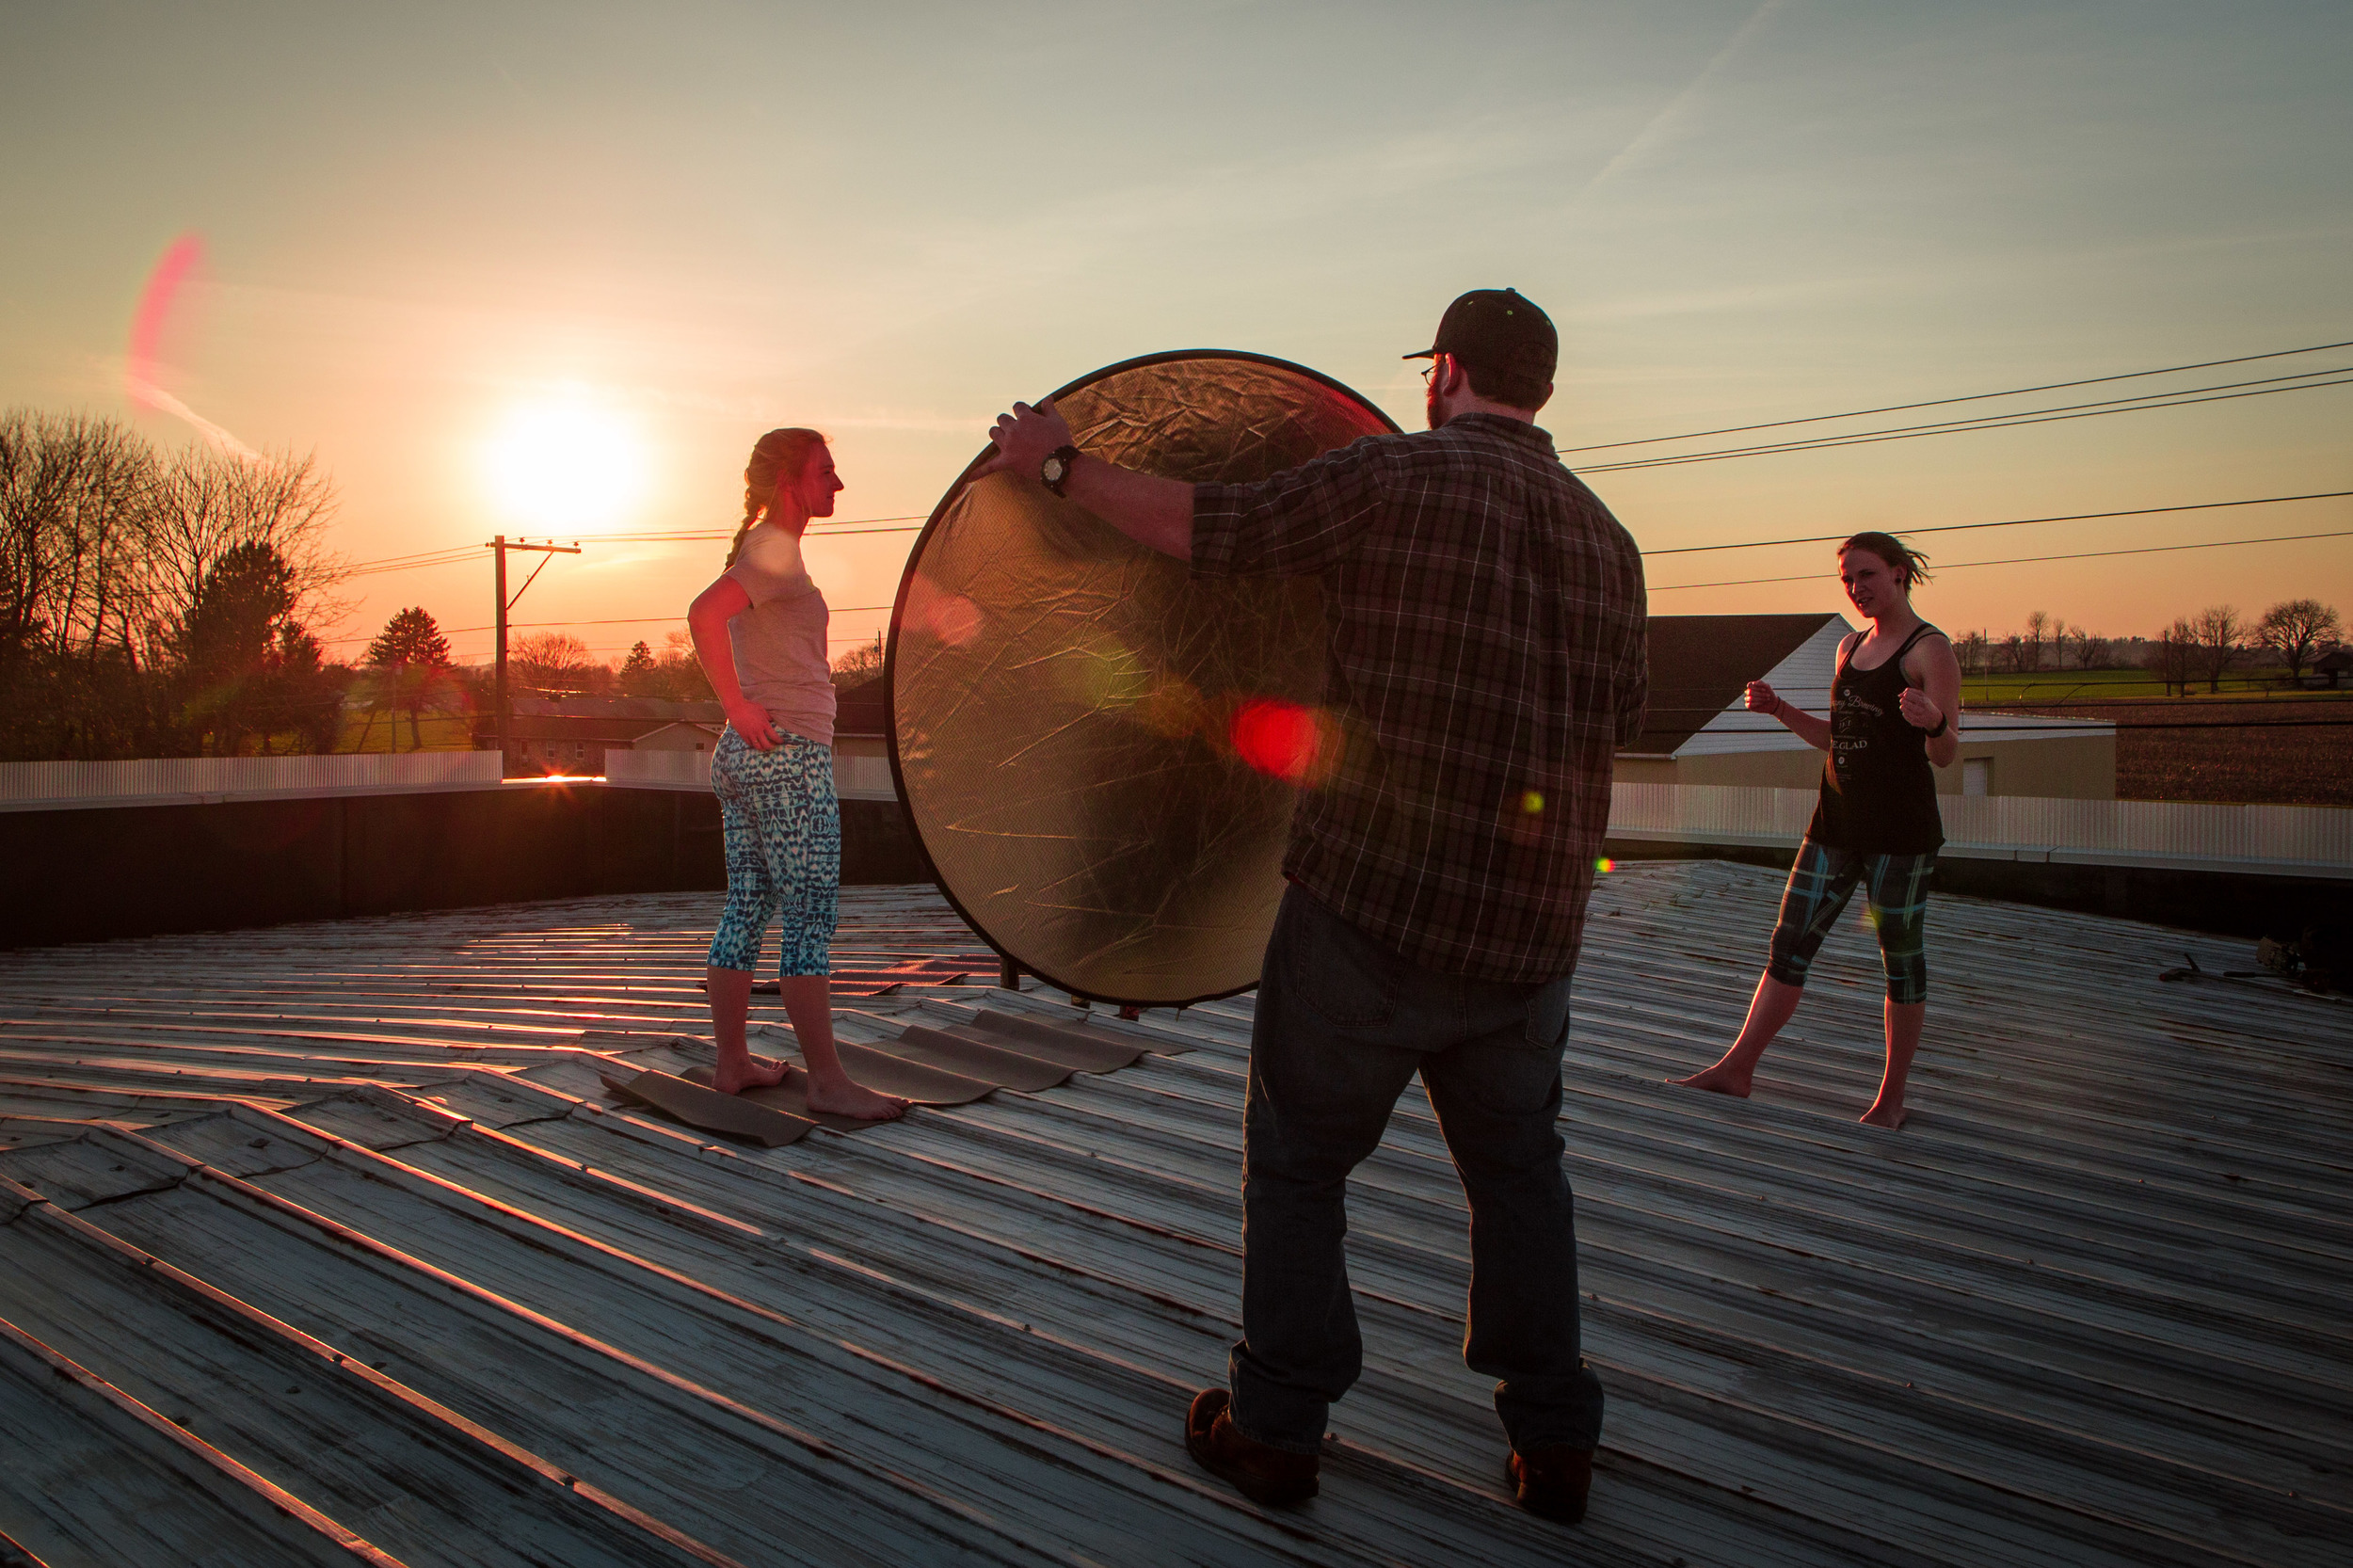 Rooftop Yoga/Beer scene for the Saucony Rule Yourself Video